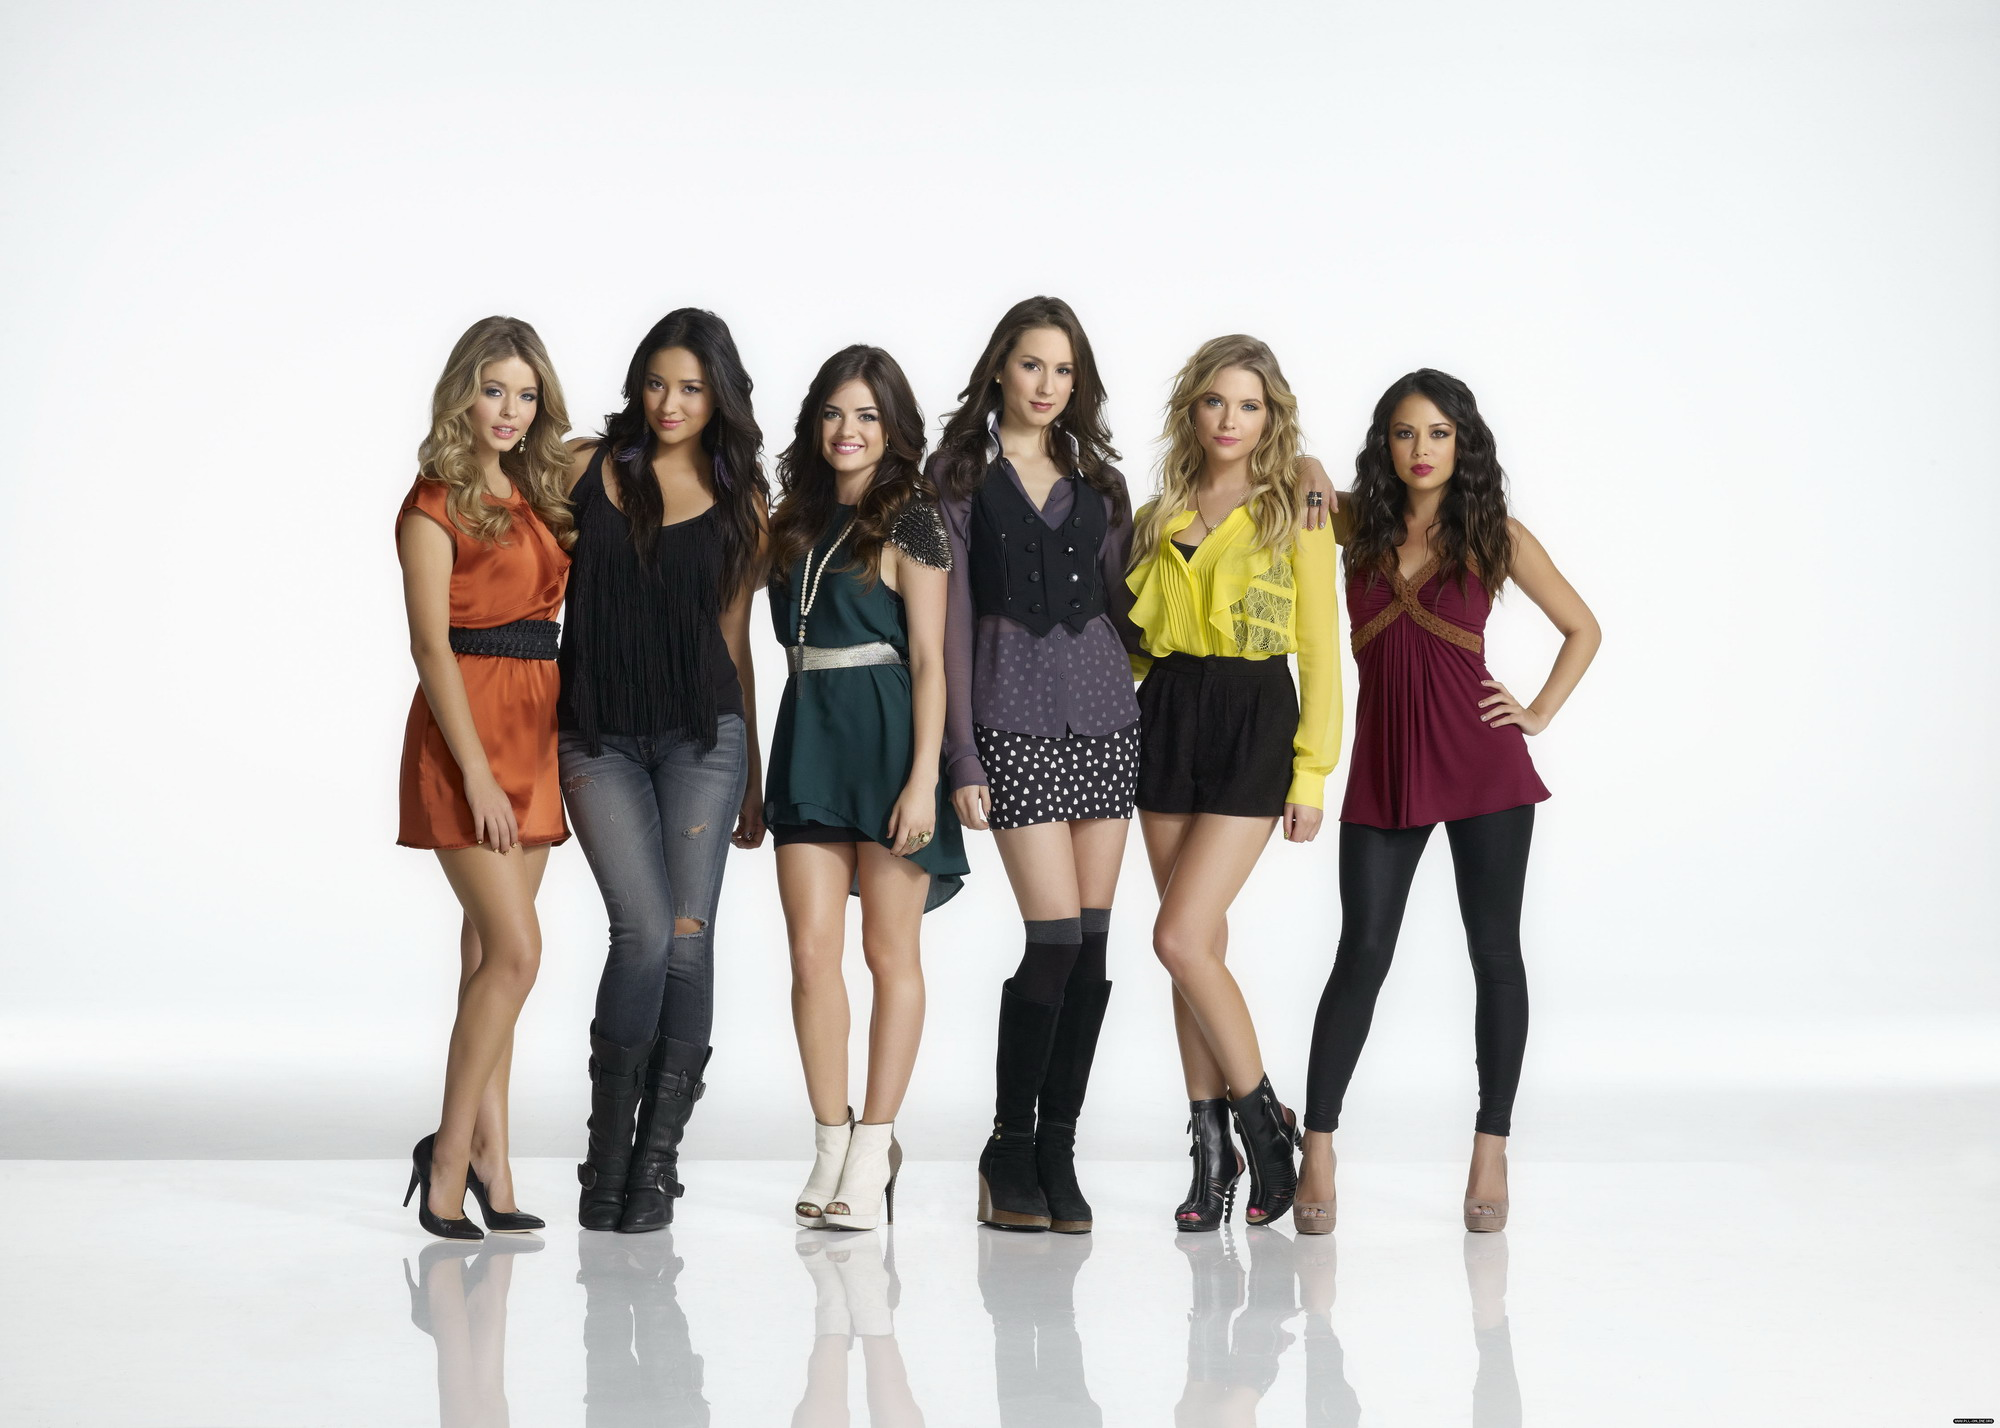 pretty little liars cast members dating It's been just under a year since pretty little liars officially  when asked if emily and the other core pll cast members would appear in the  dating video.